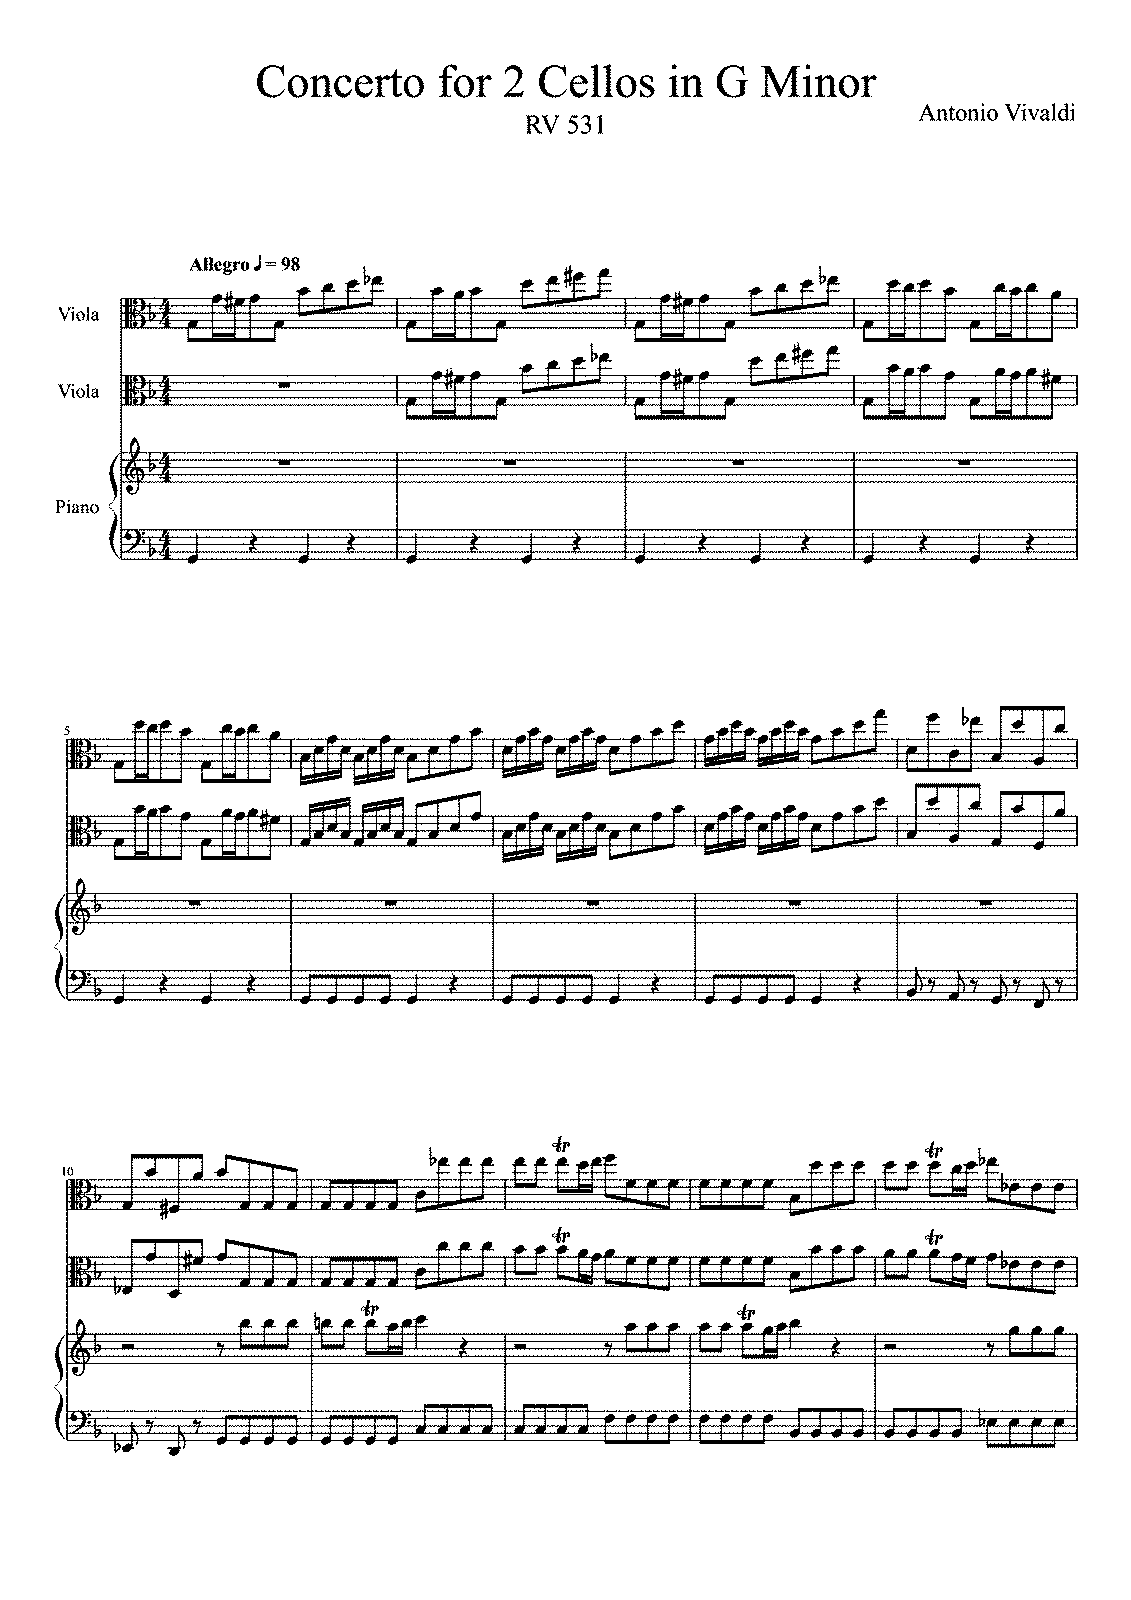 PMLP74682-Concerto for 2 Cellos in G Minor - Vivaldi, Antonio.pdf